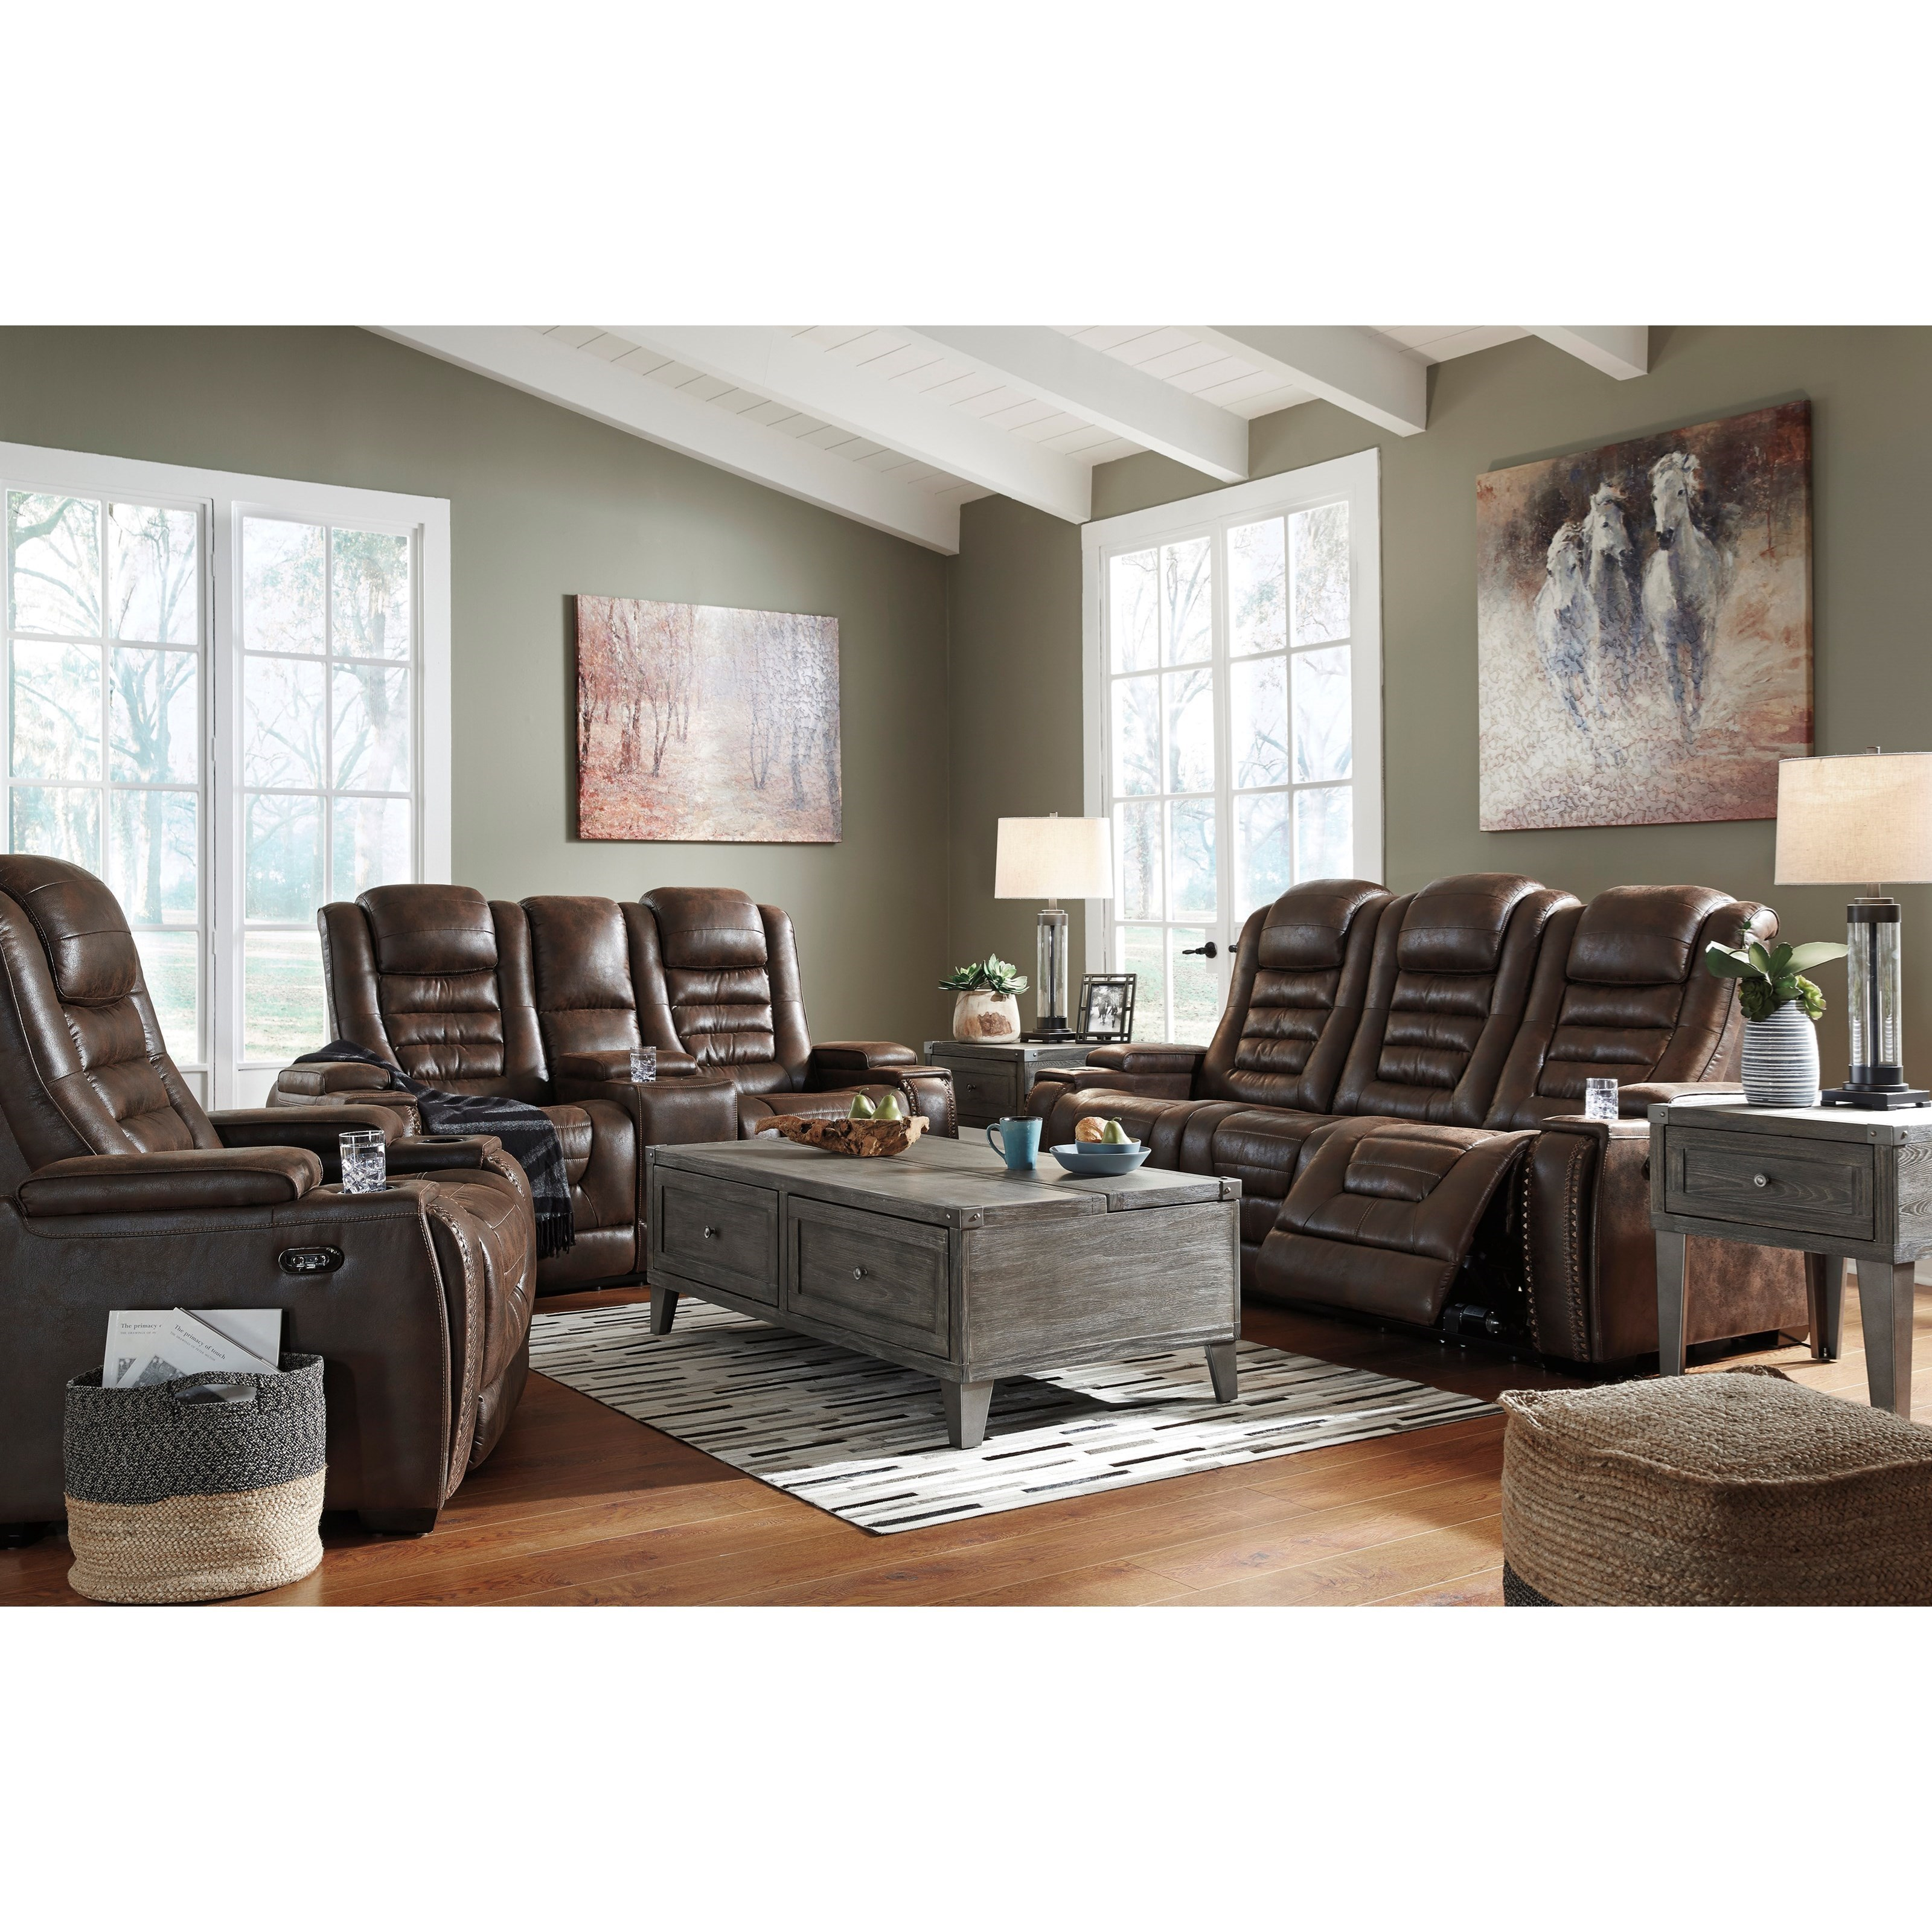 Game Zone Reclining Living Room Group by Ashley (Signature Design) at Johnny Janosik